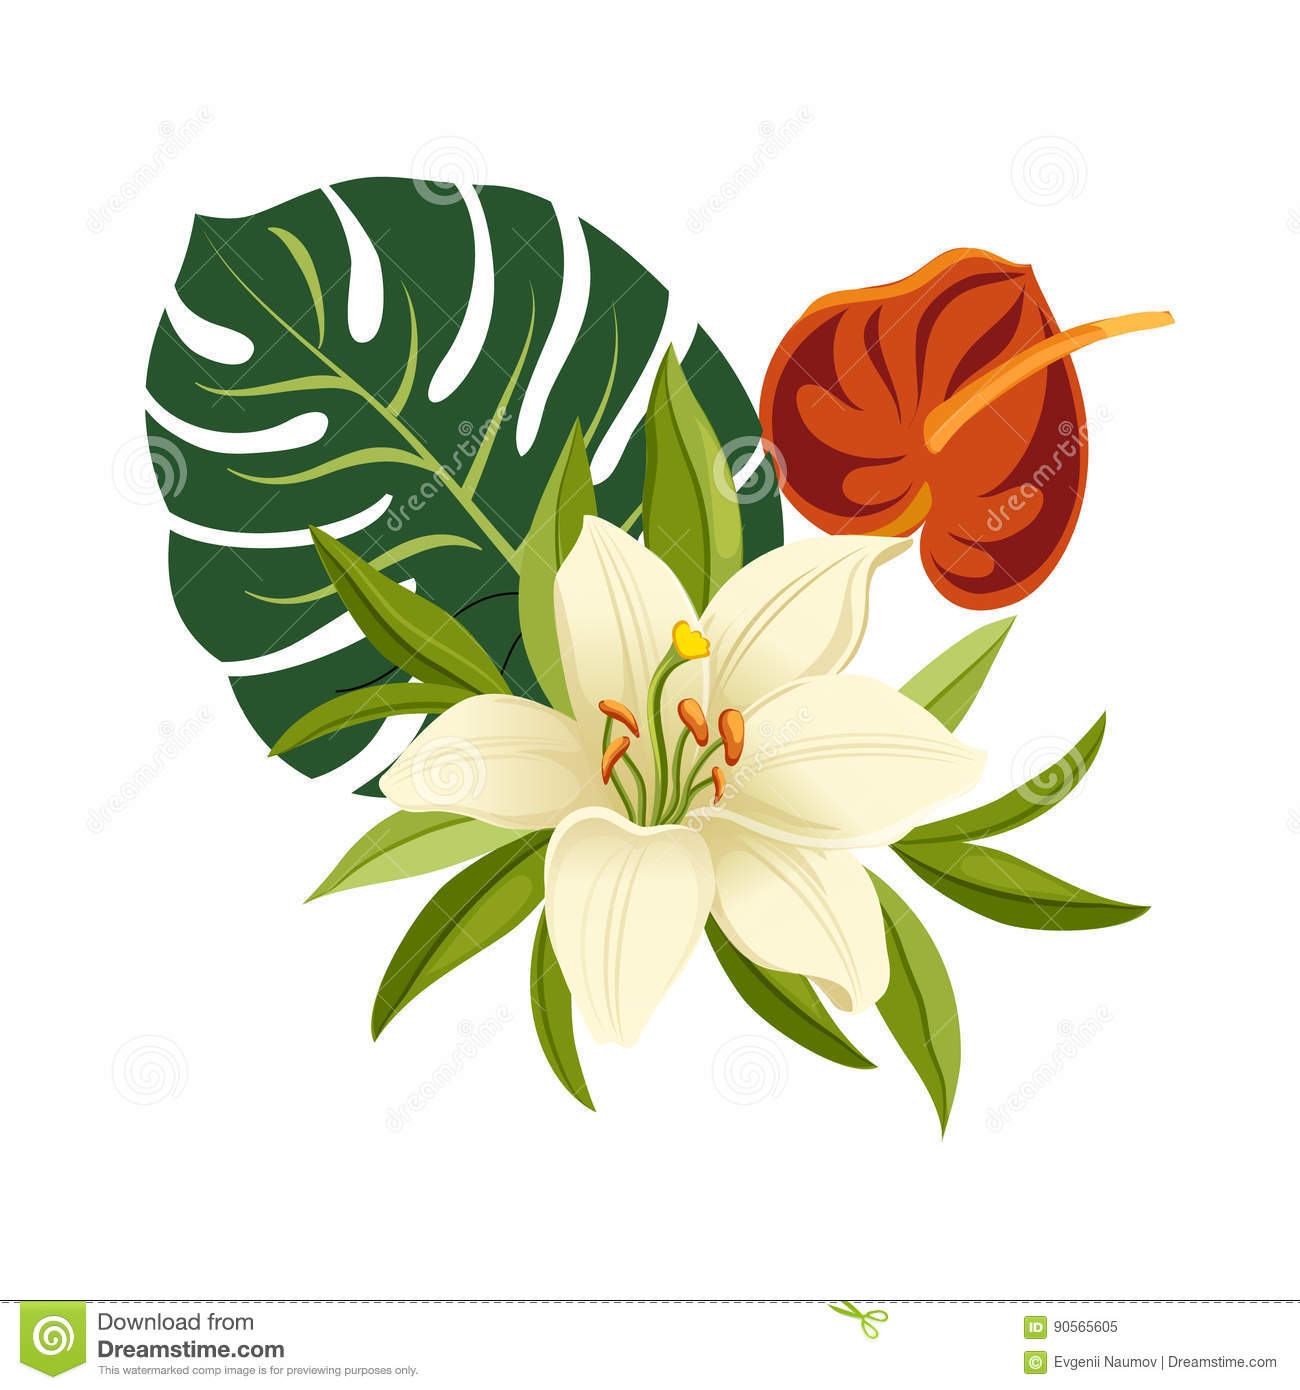 Tropical flowers and leaves. Elegant floral vector composition. Colorful cartoon illustration